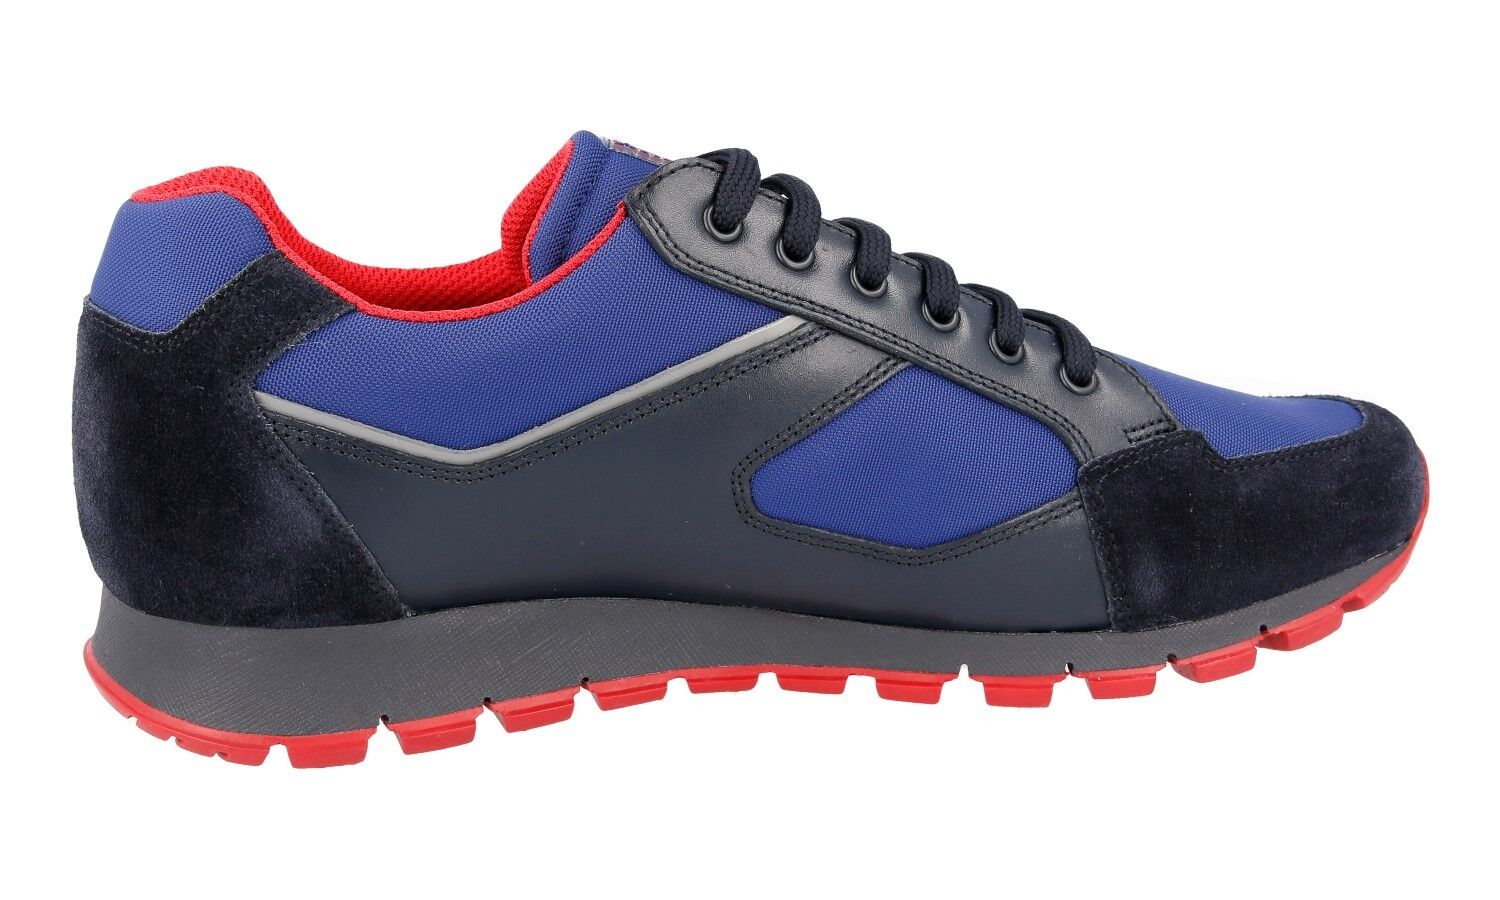 AUTHENTIC PRADA MATCHRACE SNEAKERS SNEAKERS SNEAKERS SHOES 4E2932 BLUE + RED US 9 EU 42 42,5 f27be9